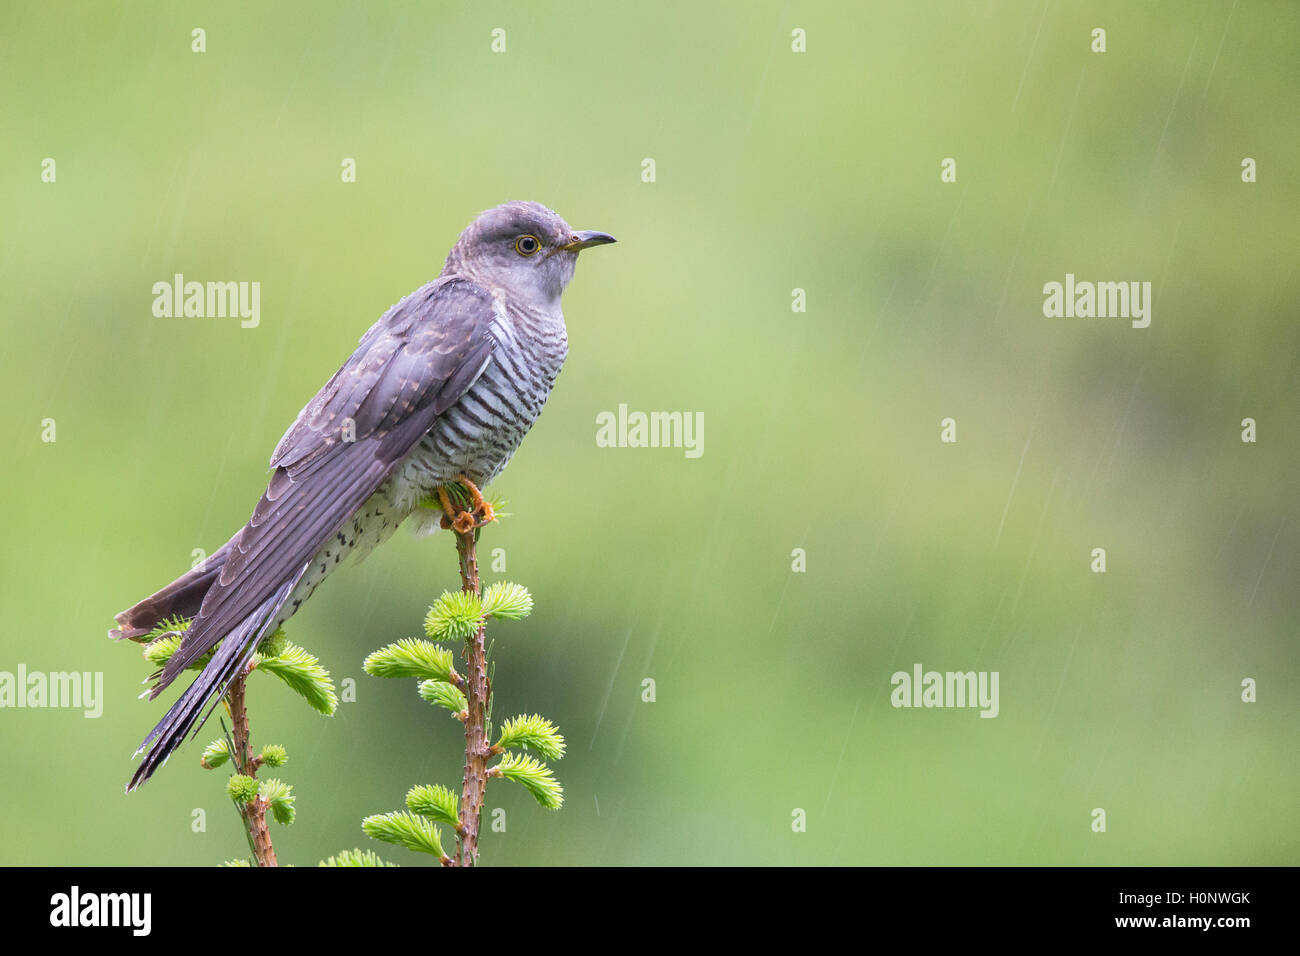 Cuckoo (Cuculus canorus), perched on a tree top, Stubai Valley, Tyrol, Austria - Stock Image